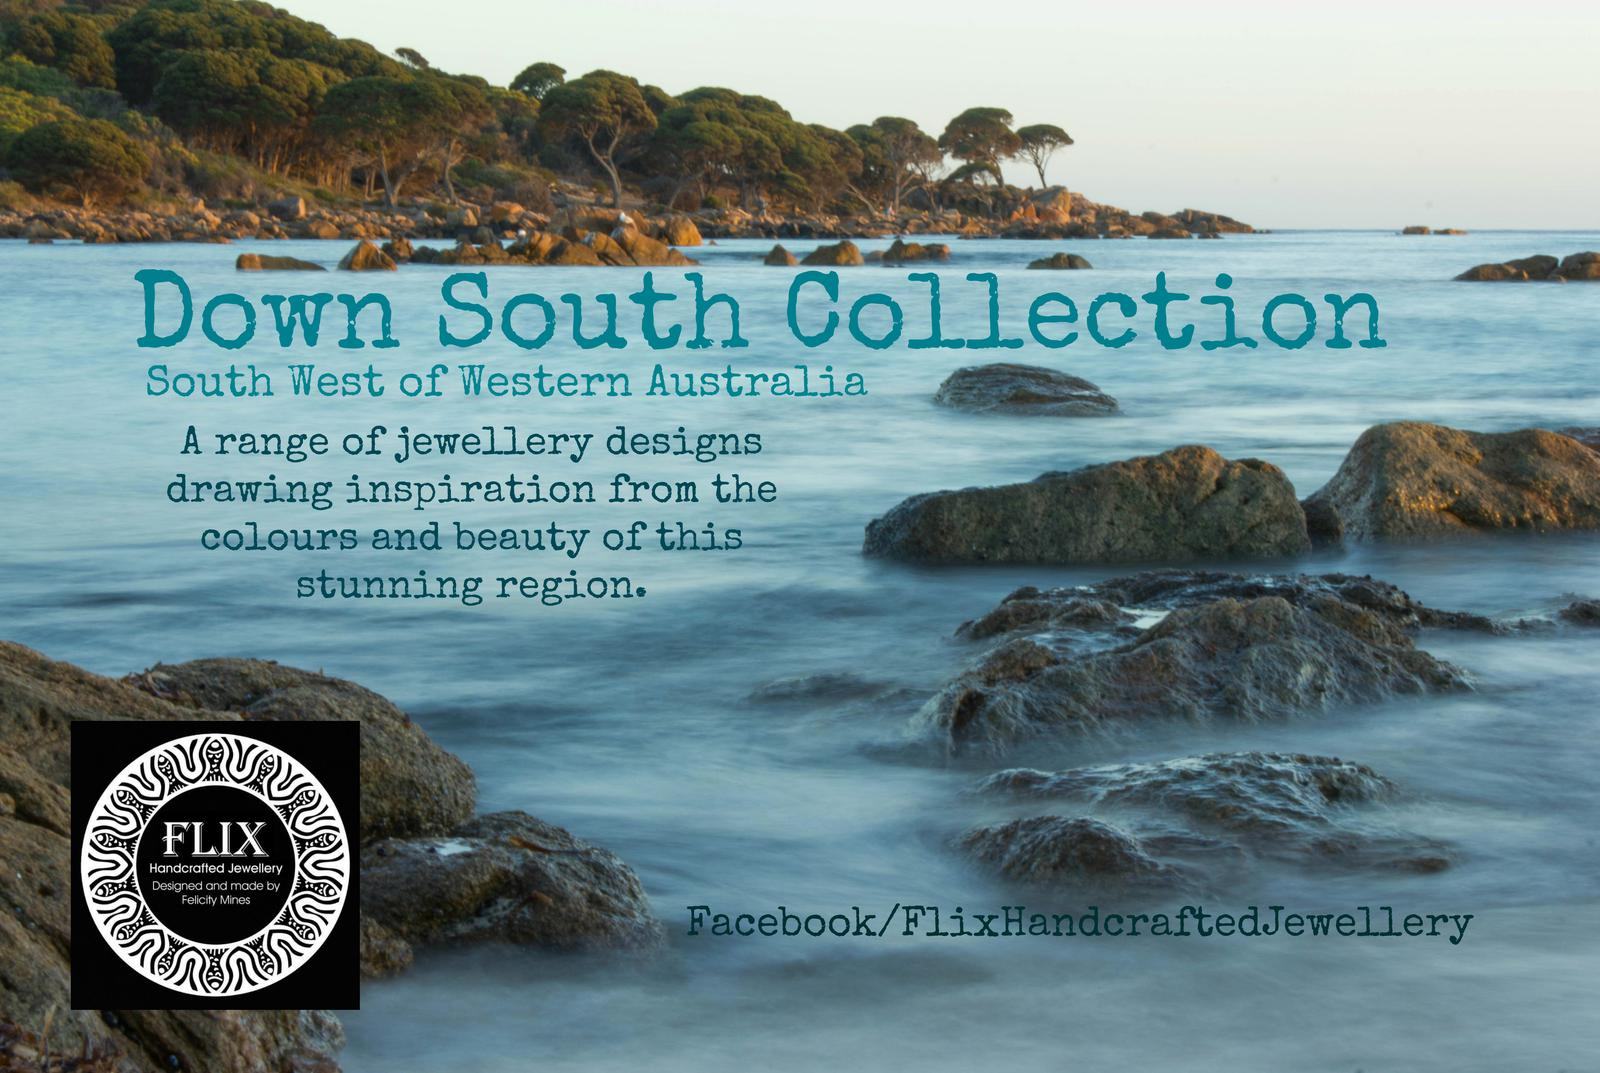 Down South Collection. My son took this photo. We got there for the Sunrise.